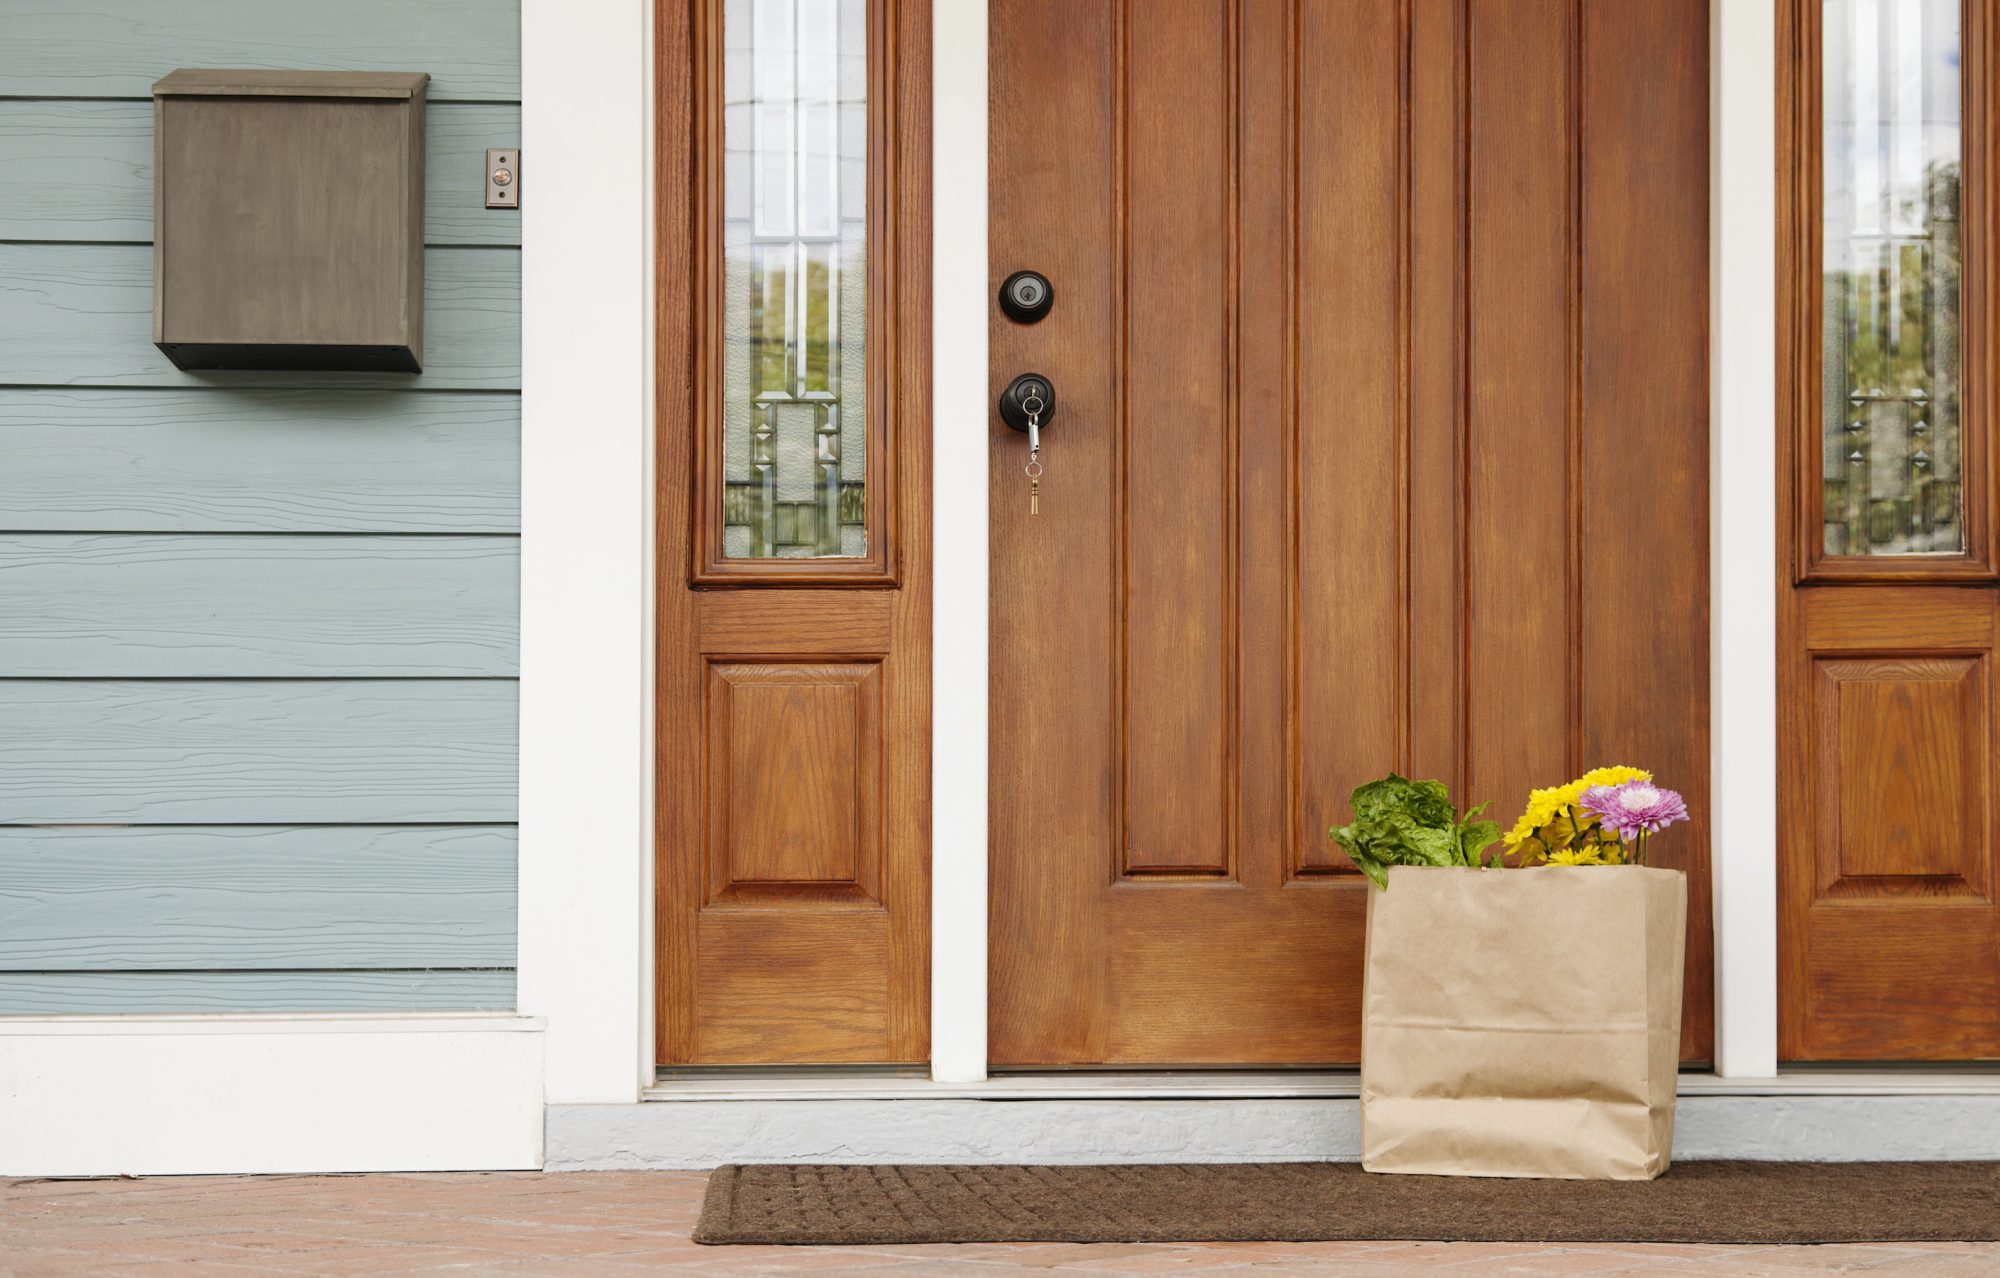 Wooden front door and grocery bag